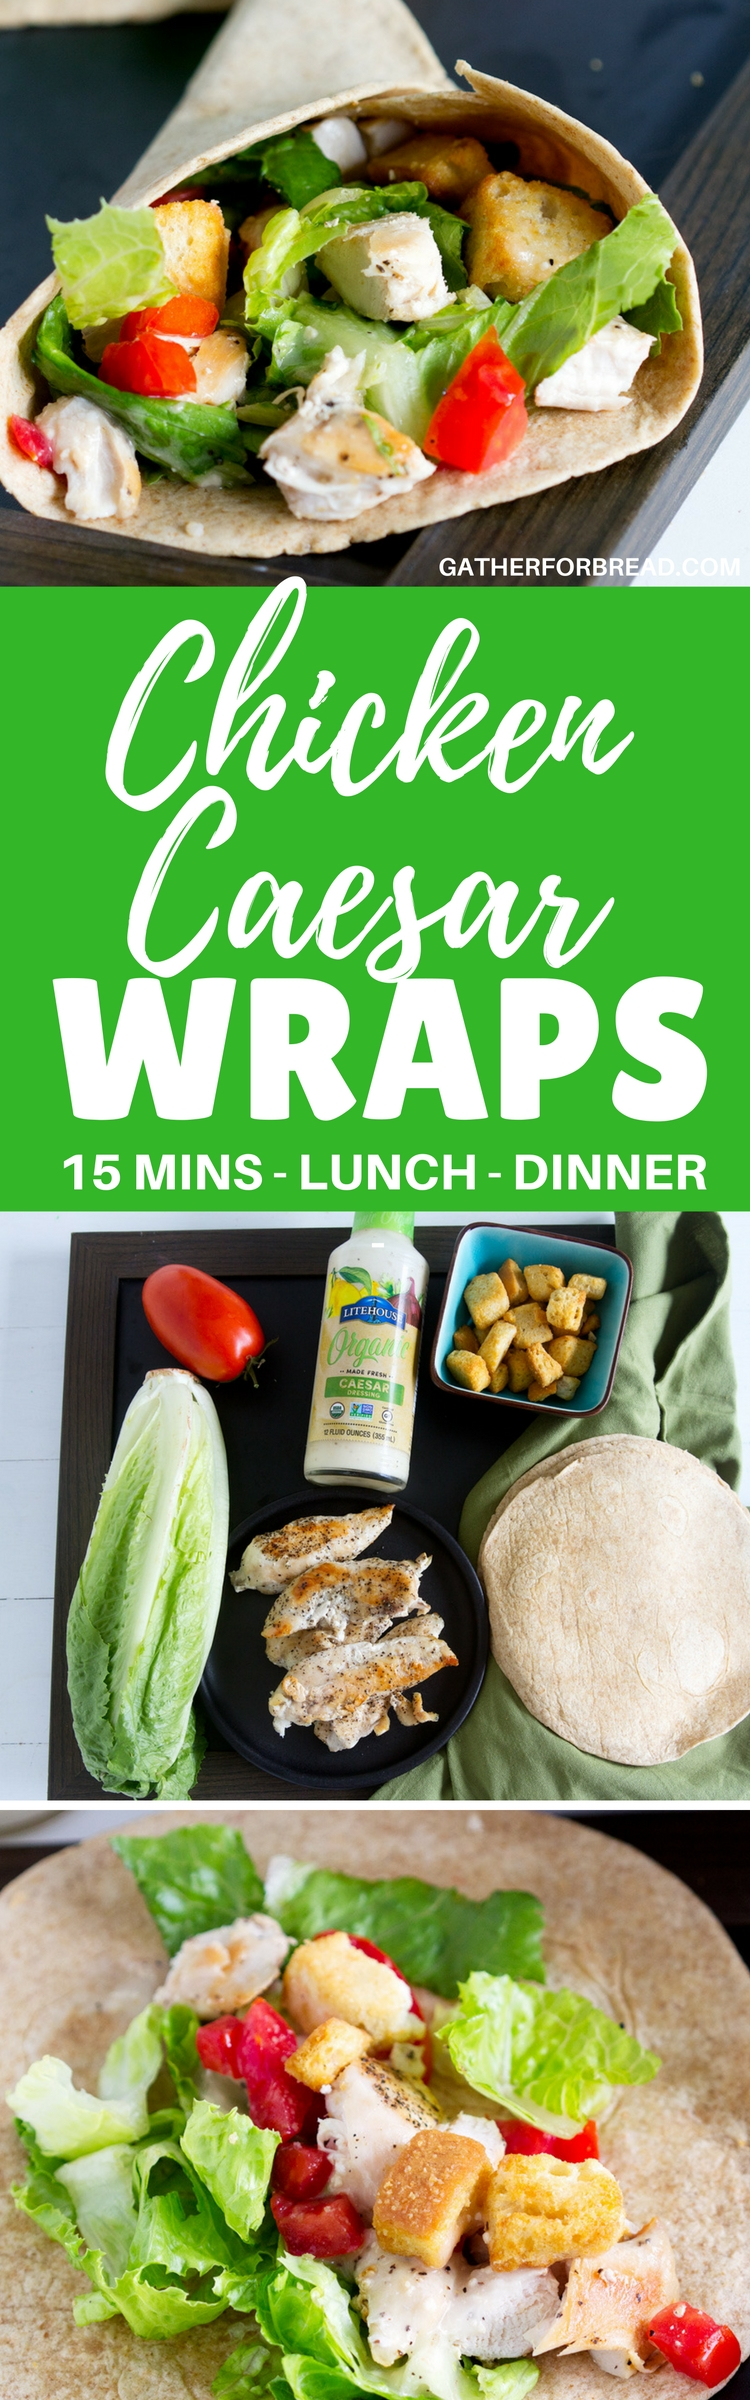 Chicken Caesar Wraps //  Quick easy meal. Wraps with chicken breast, romaine lettuce, fresh tomatoes, croutons and Caesar dressing make a simple easy lunch or dinner. Ready in less than 20 minutes!!!